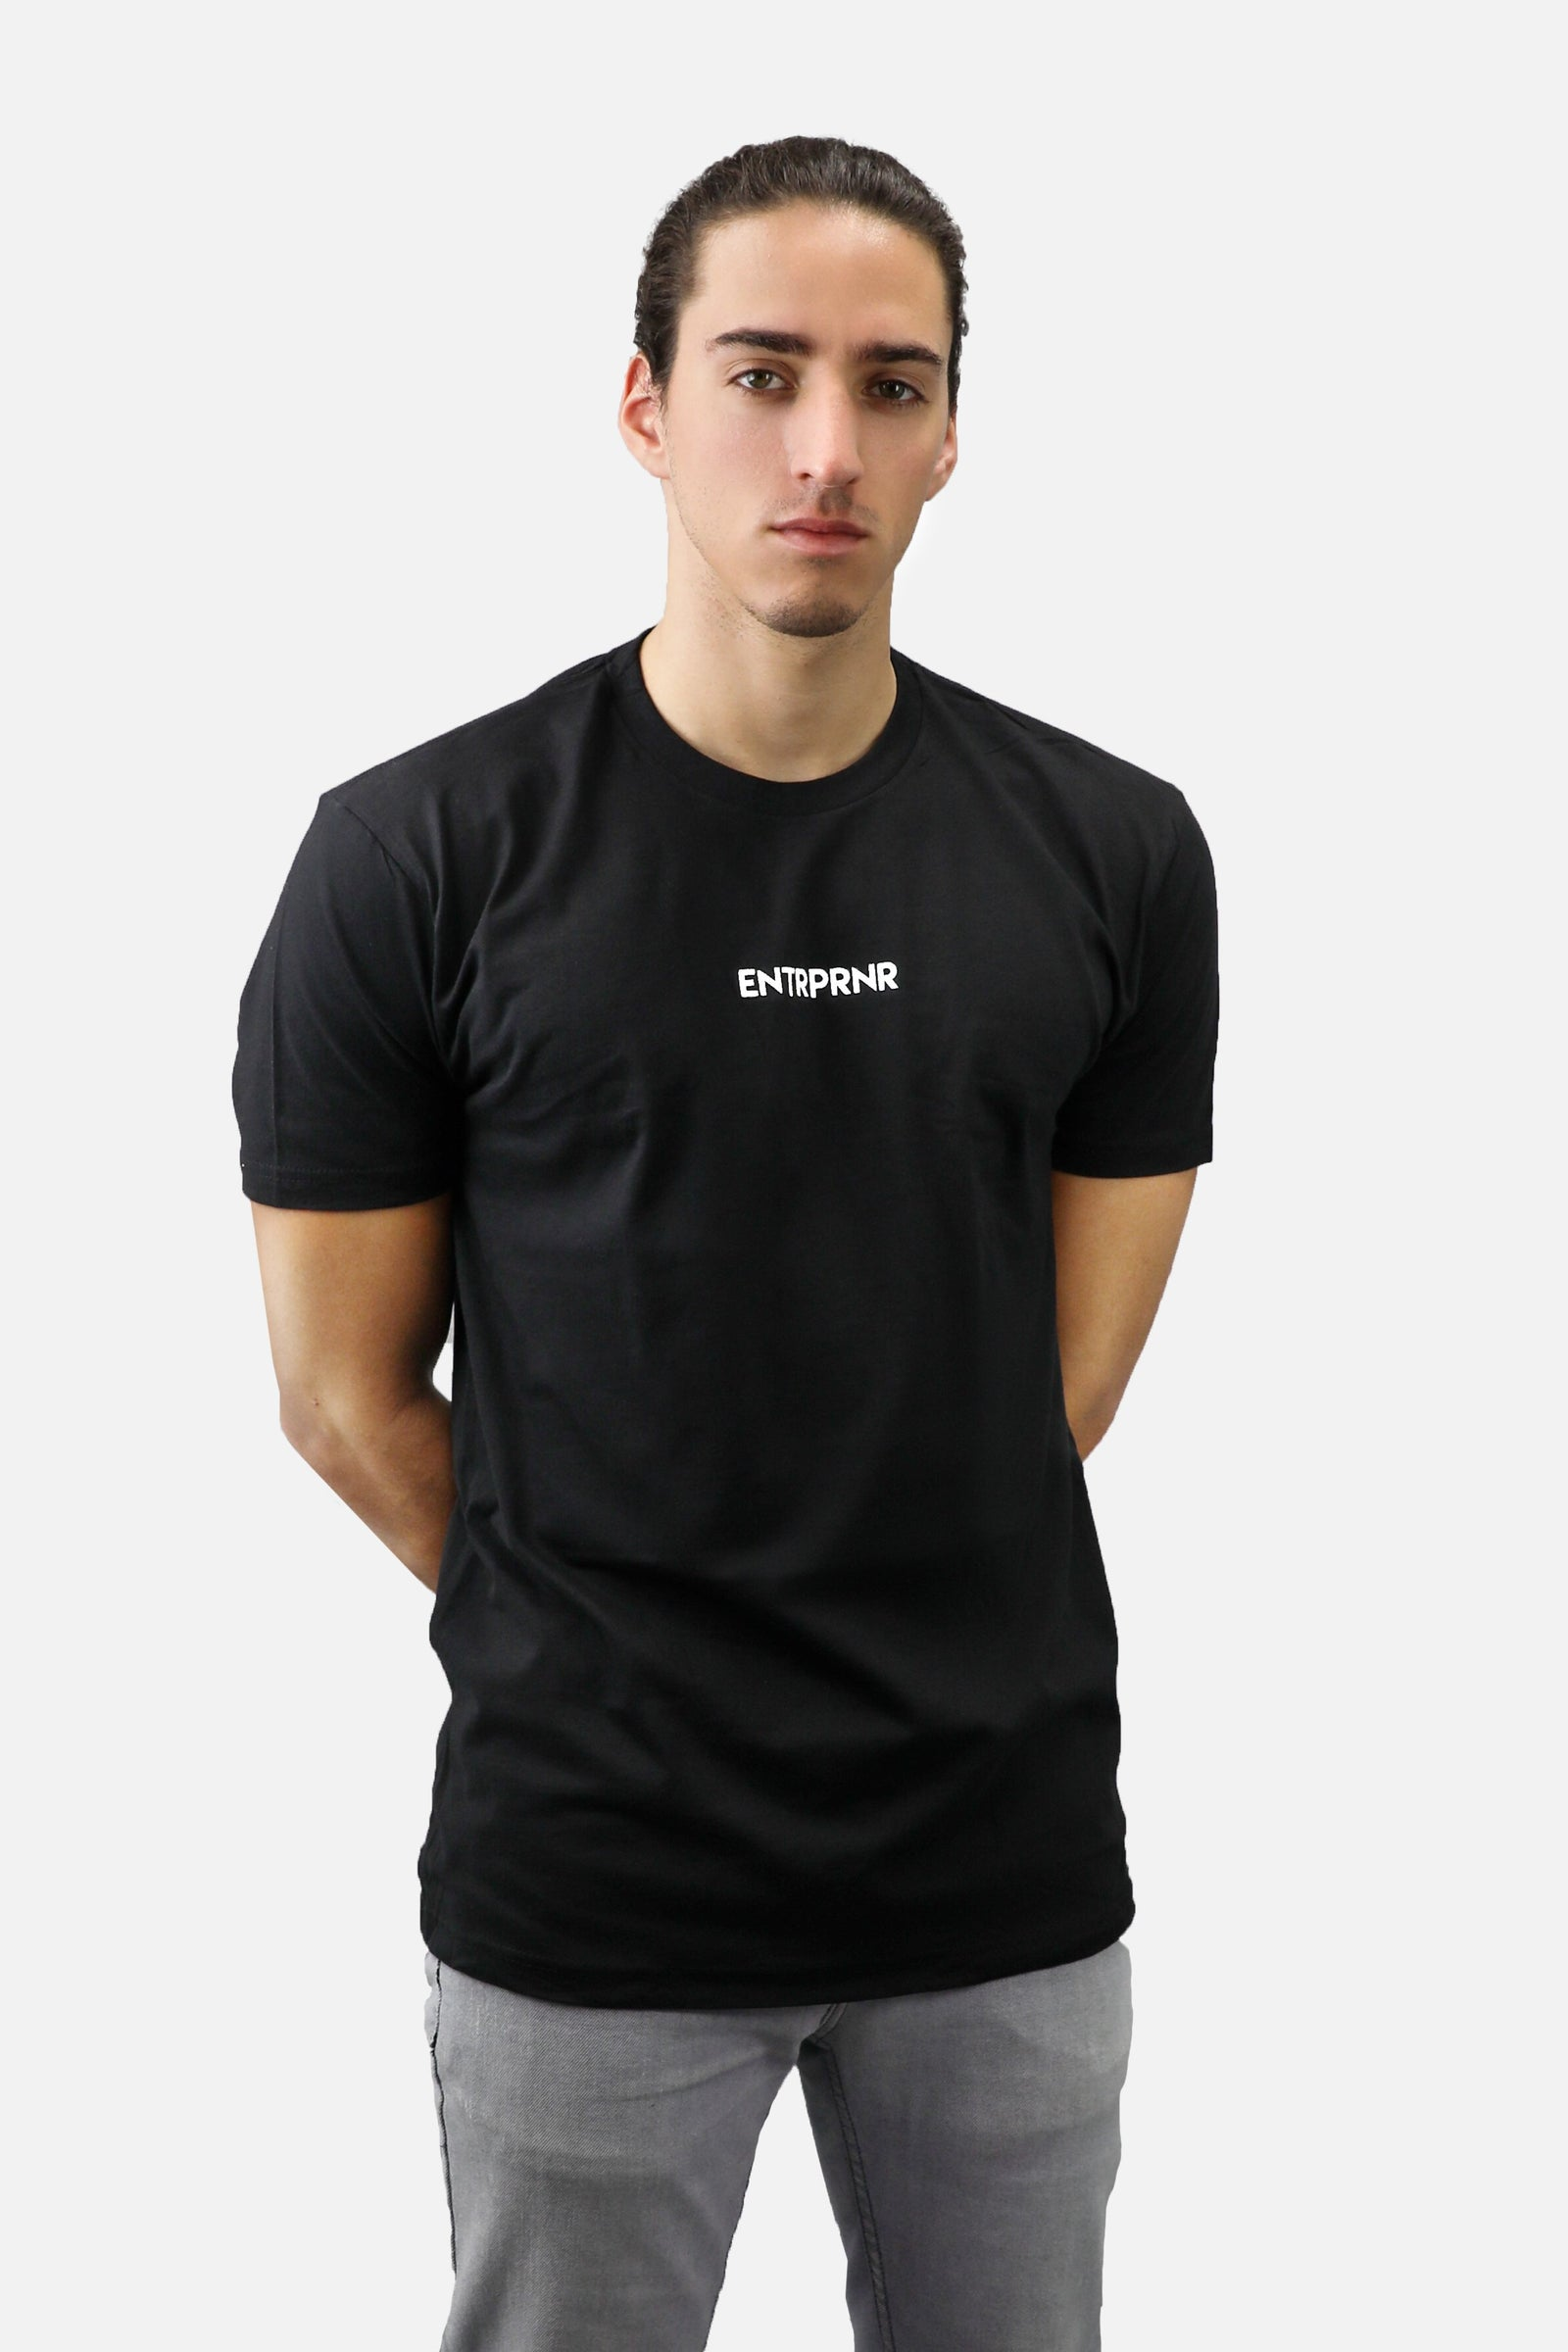 Tiny Logo ENTRPRNR Tee - Black - ENTRPRNR® | The Entrepreneur's Clothing Brand. | Stagnancy is the Enemy. Action is King.